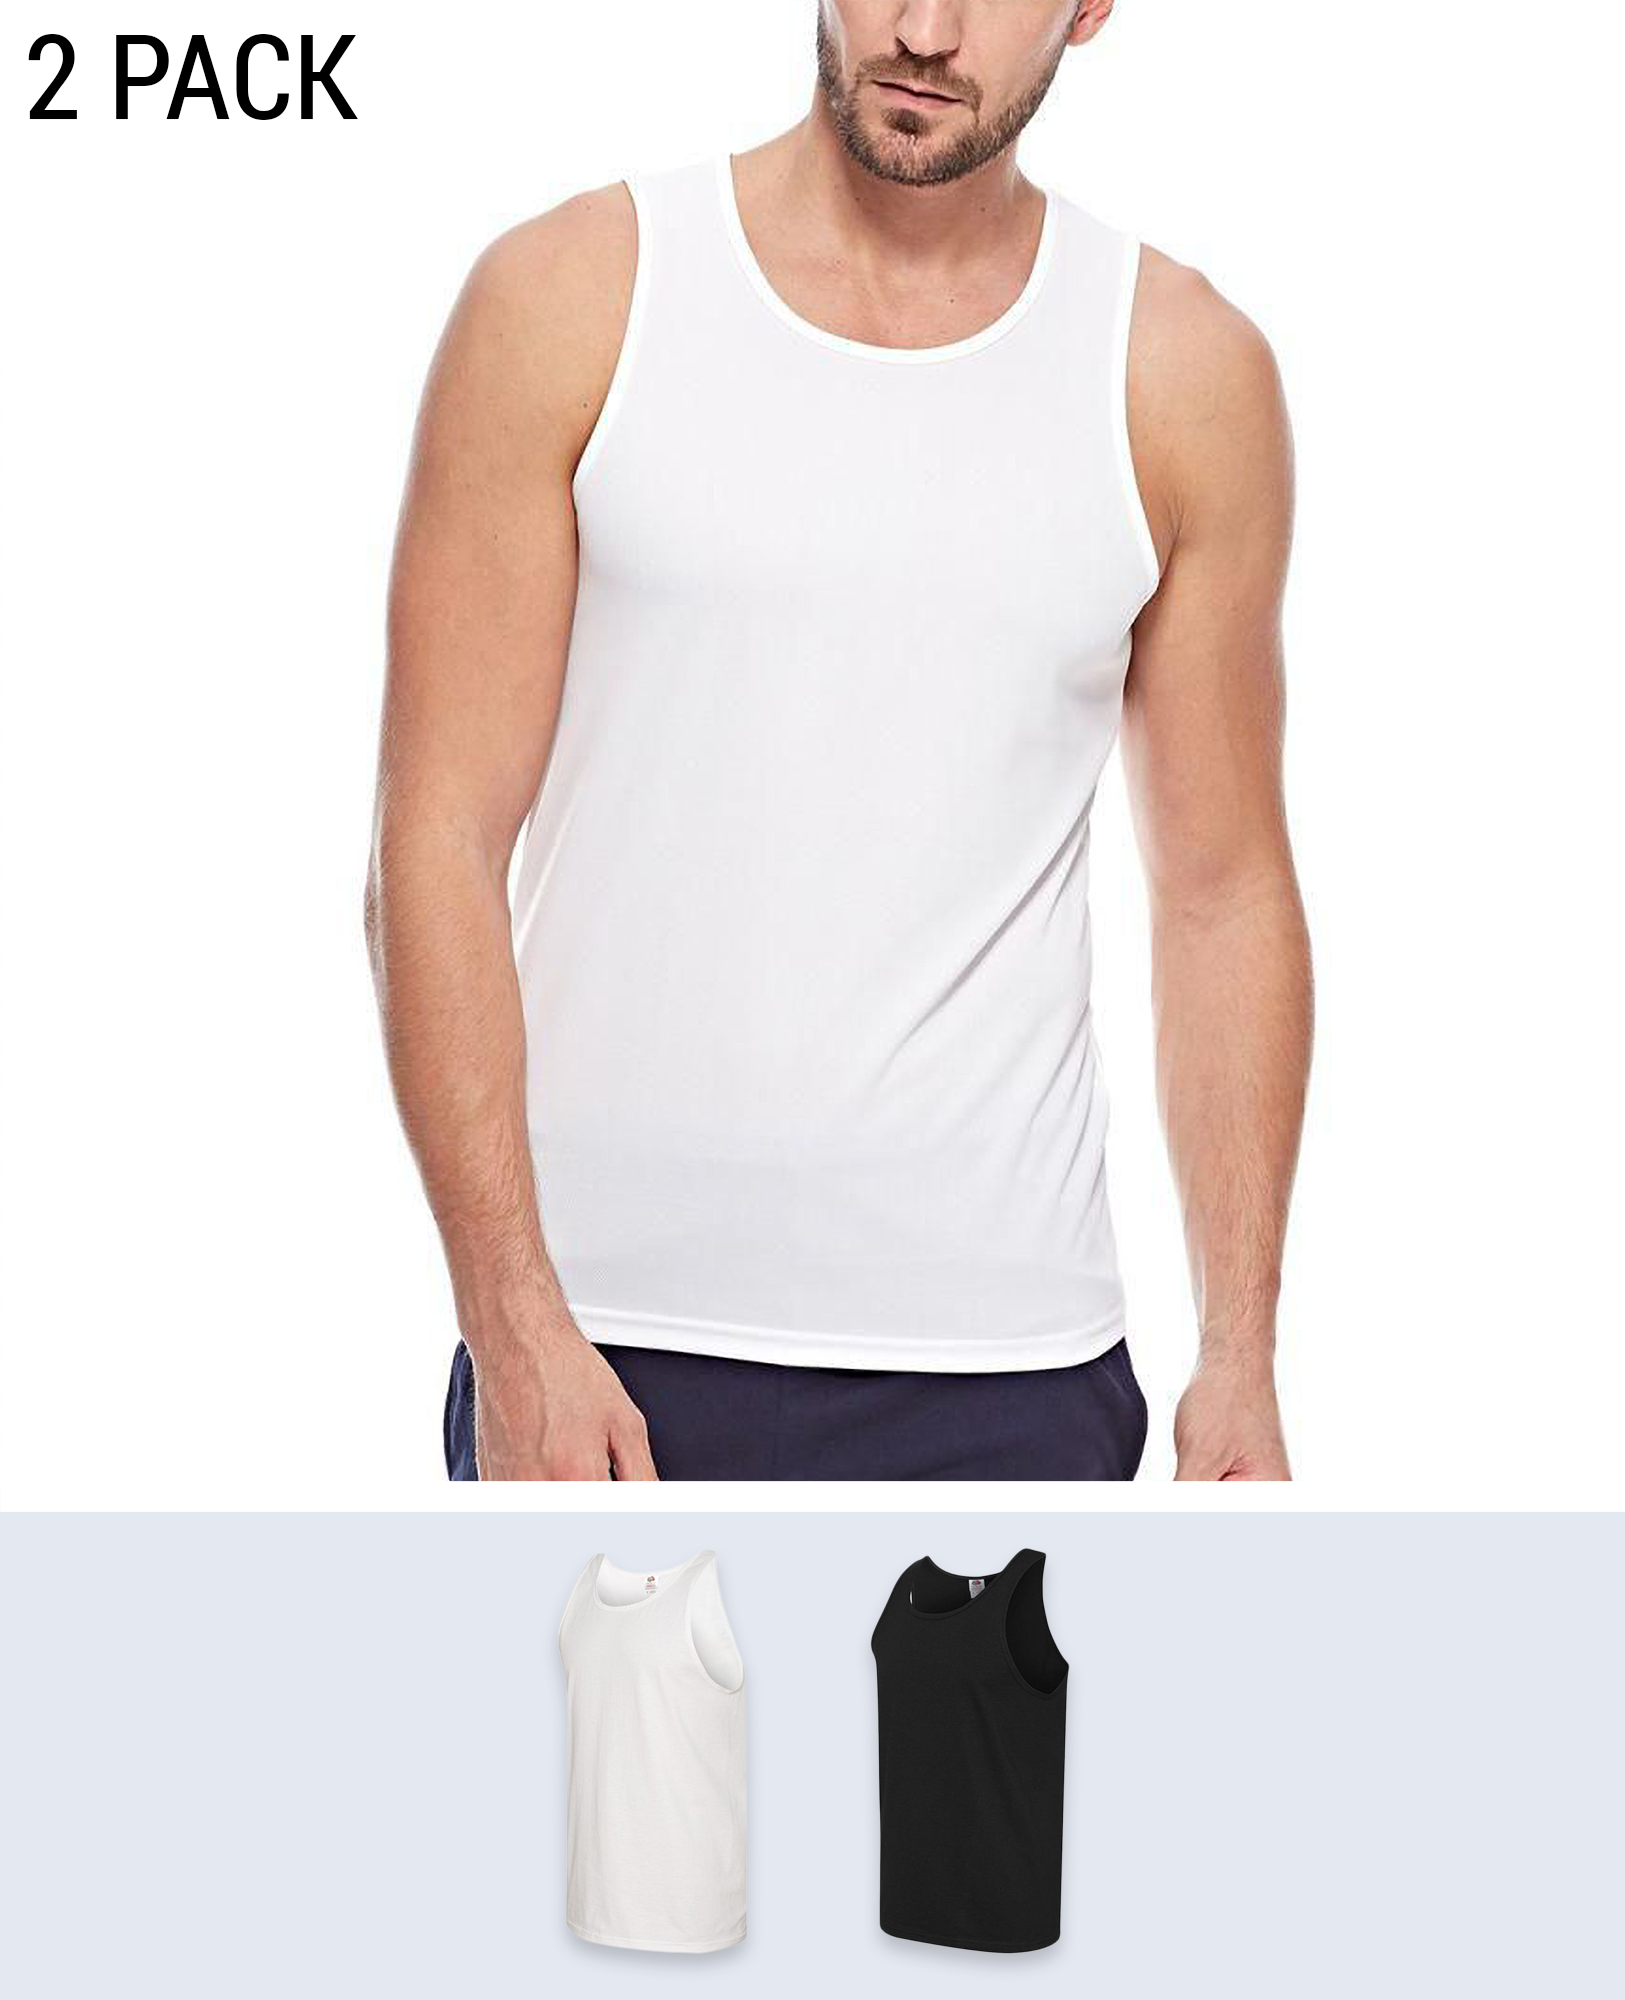 2 pack Men's Tank - Tanks - Fruit of the loom - BRANMA